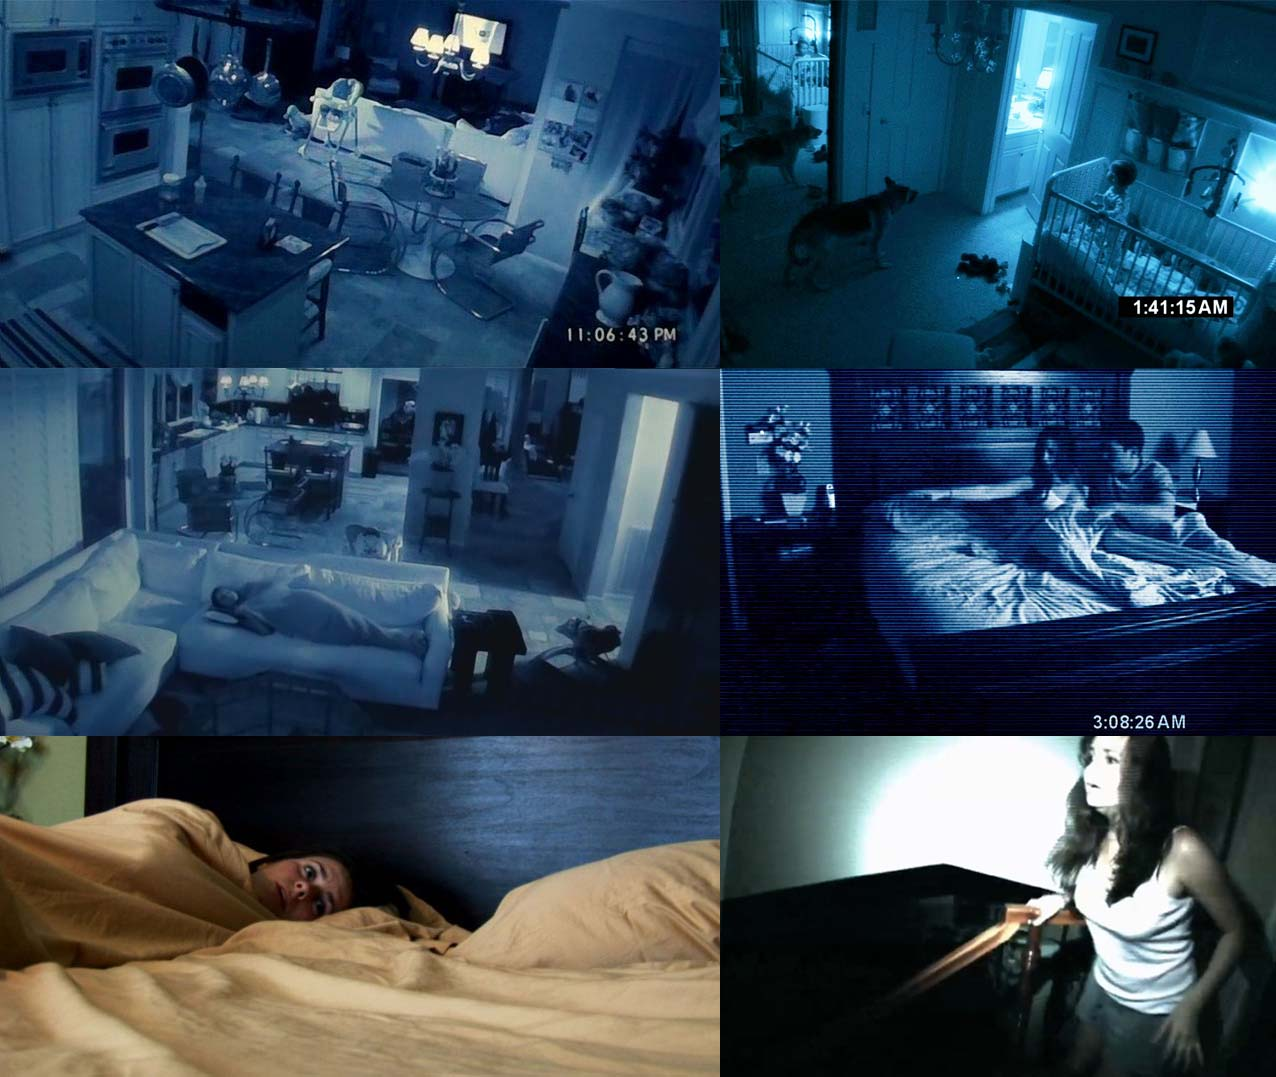 paranormal activity the ghost dimension 480p download